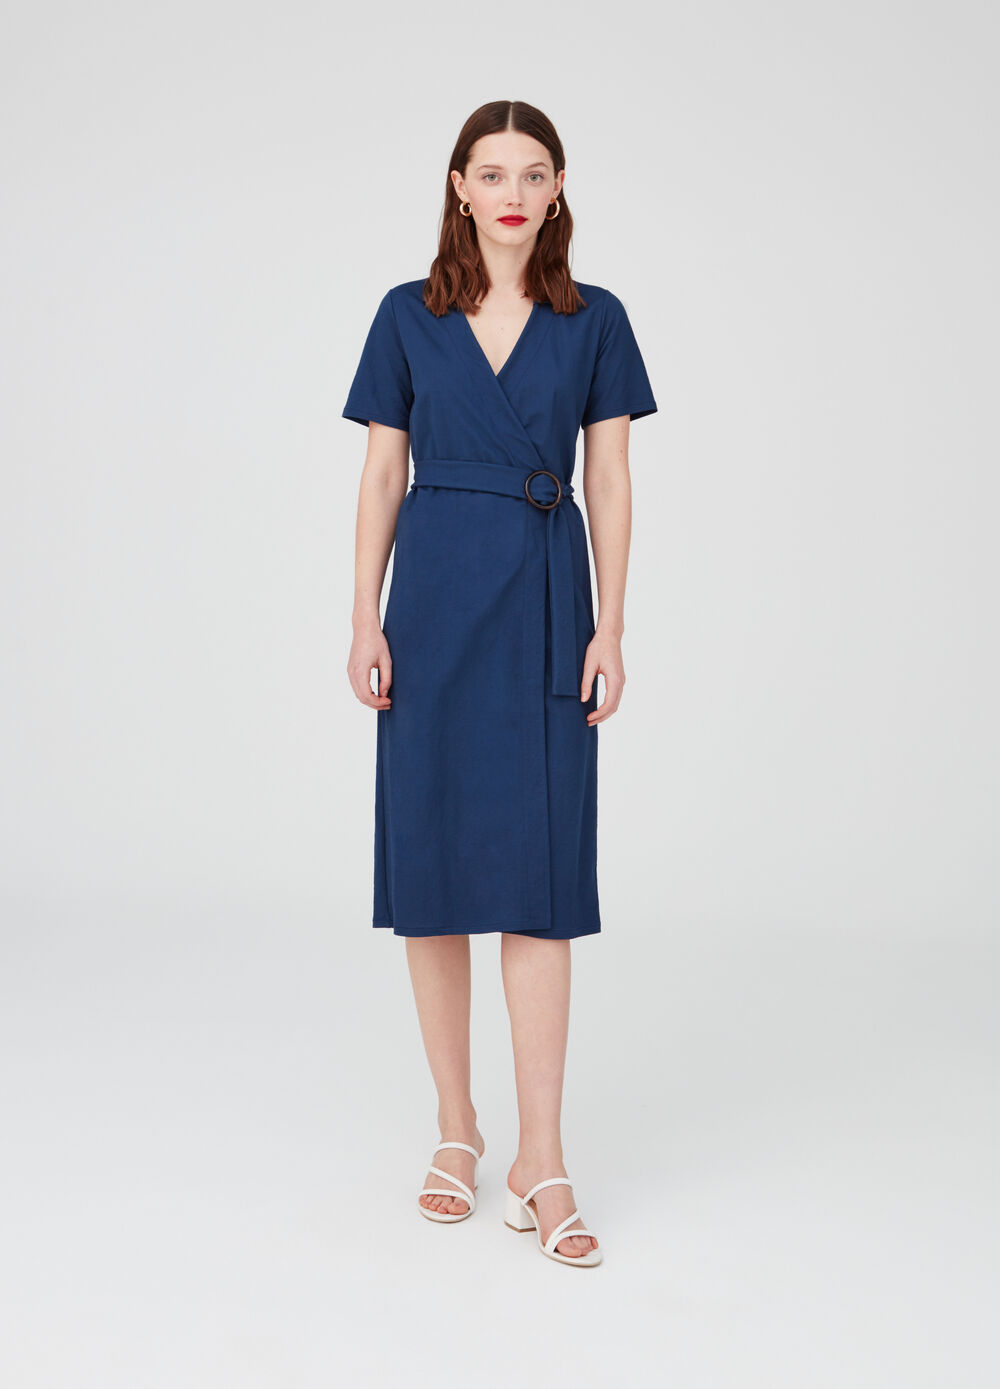 Dress with V-neck and belt